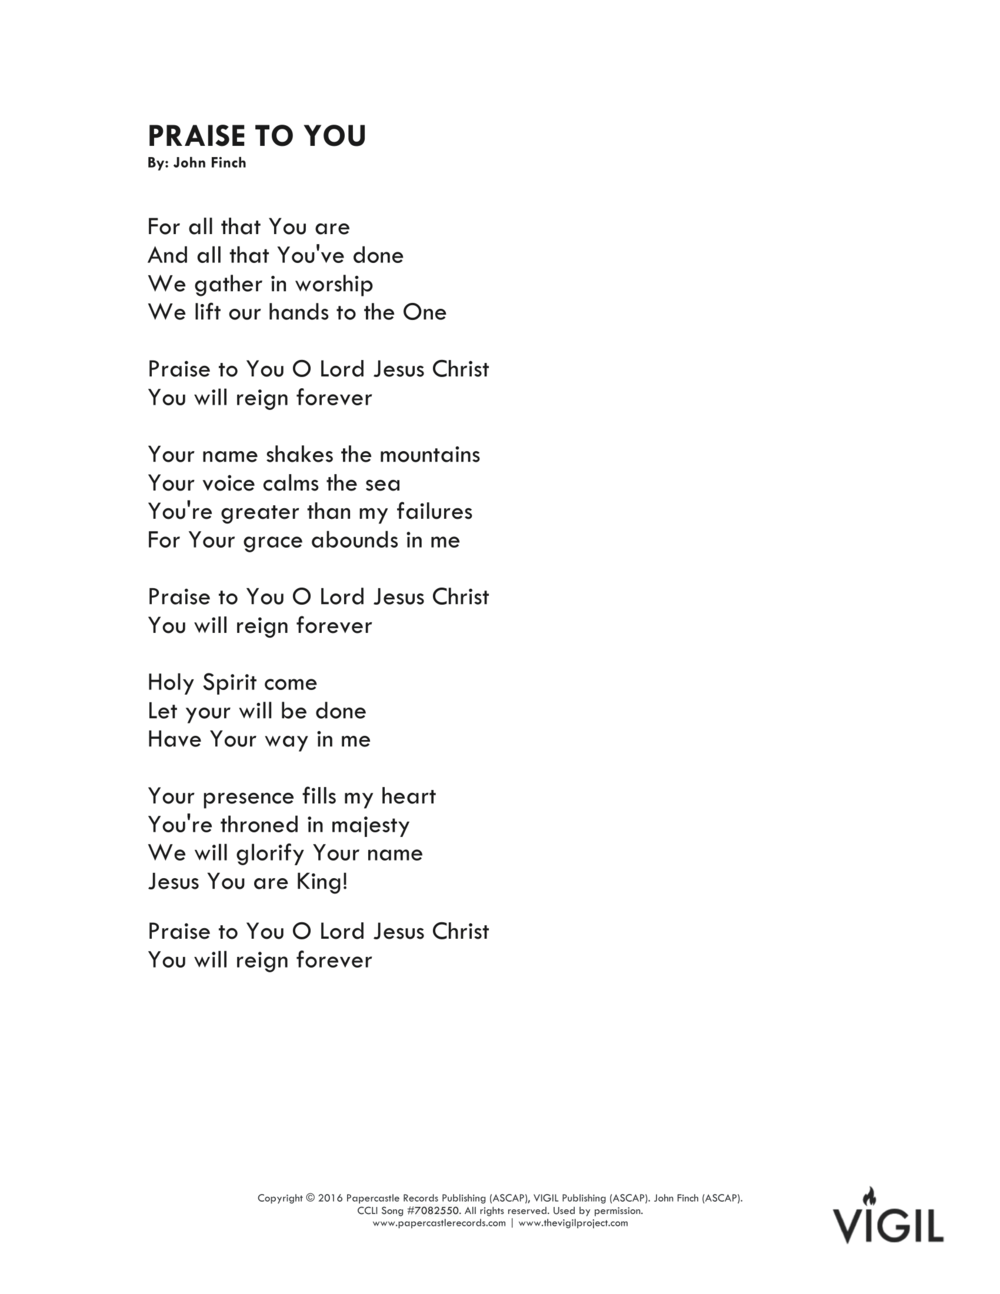 VIGIL S1 - Praise To You (Lyrics)-1.png